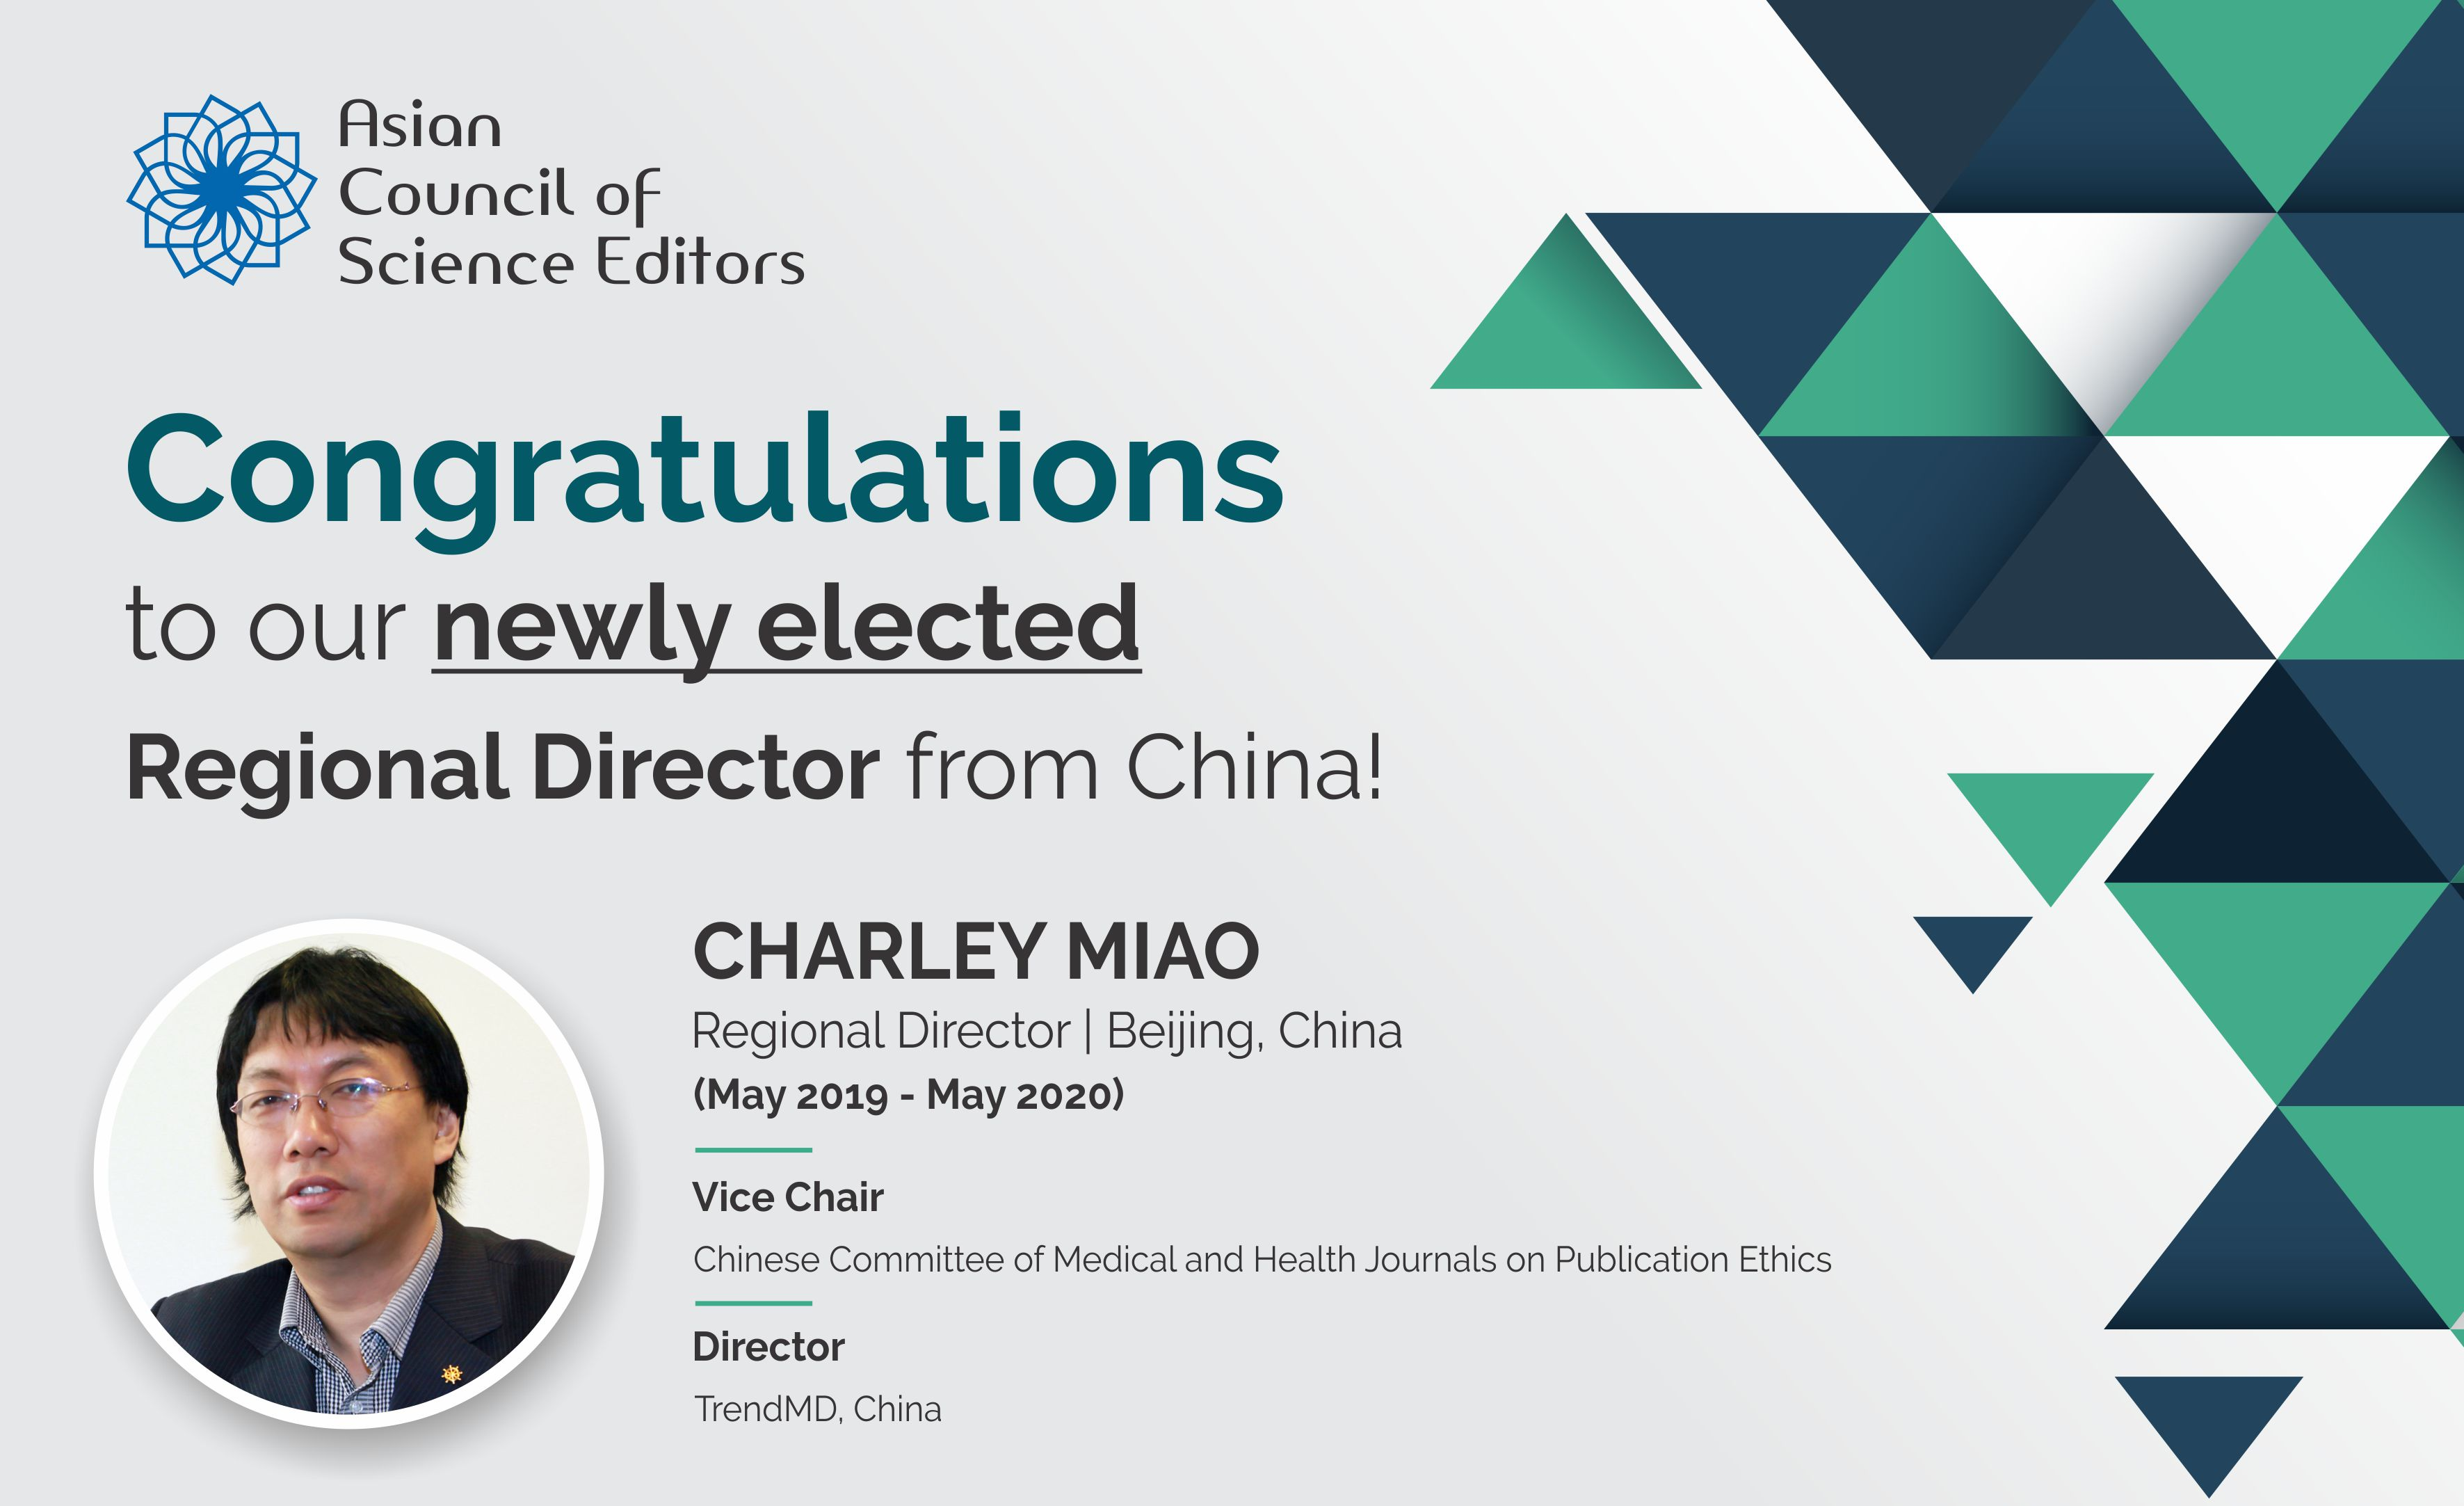 Cheerful Welcome to our newly elected Regional Director from China!